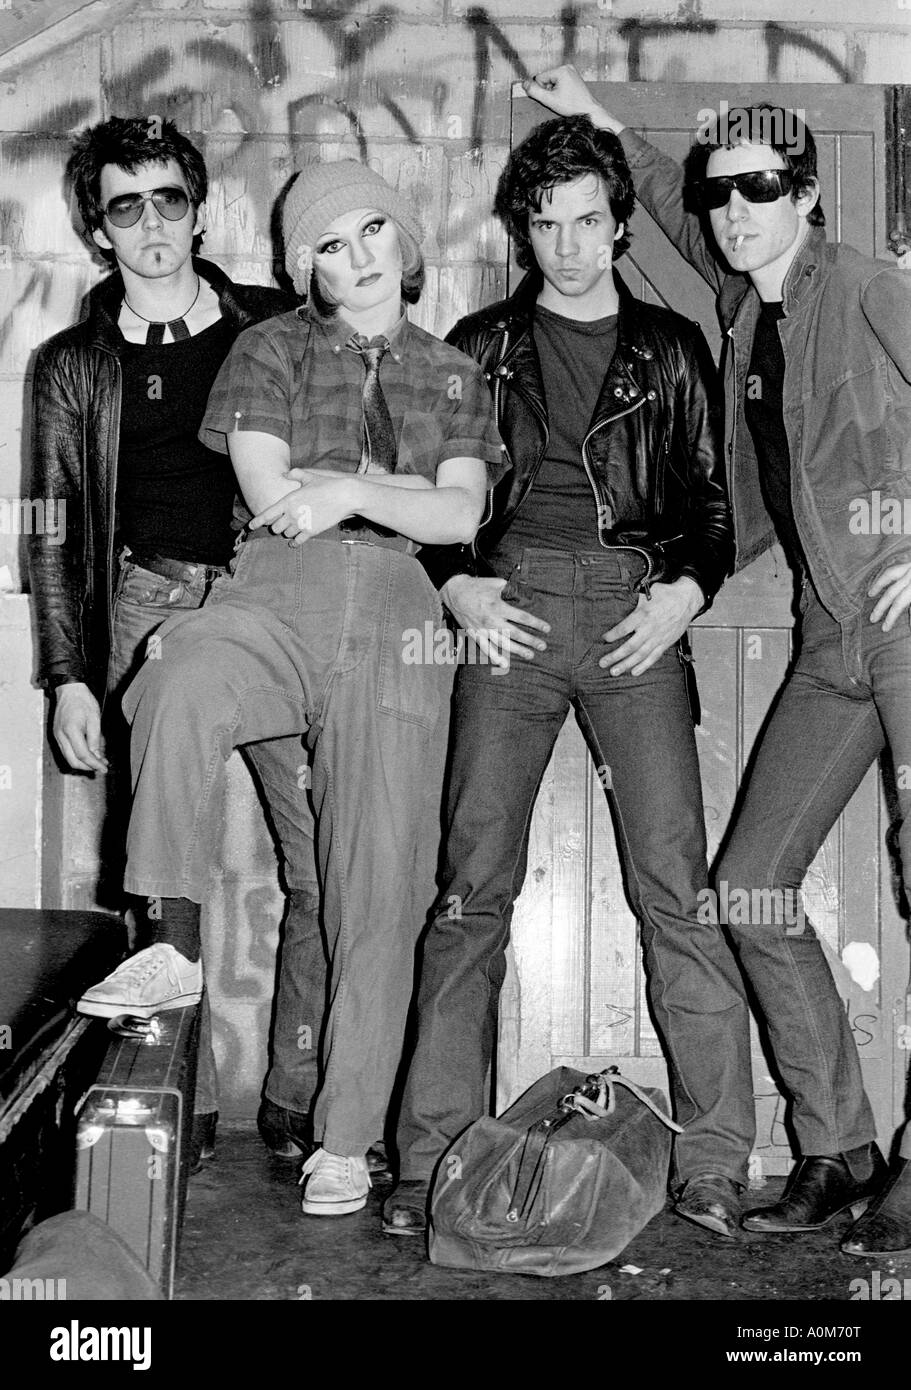 The Electric Chairs. Punk rock band. Photographed at the marquee club London. - Stock Image